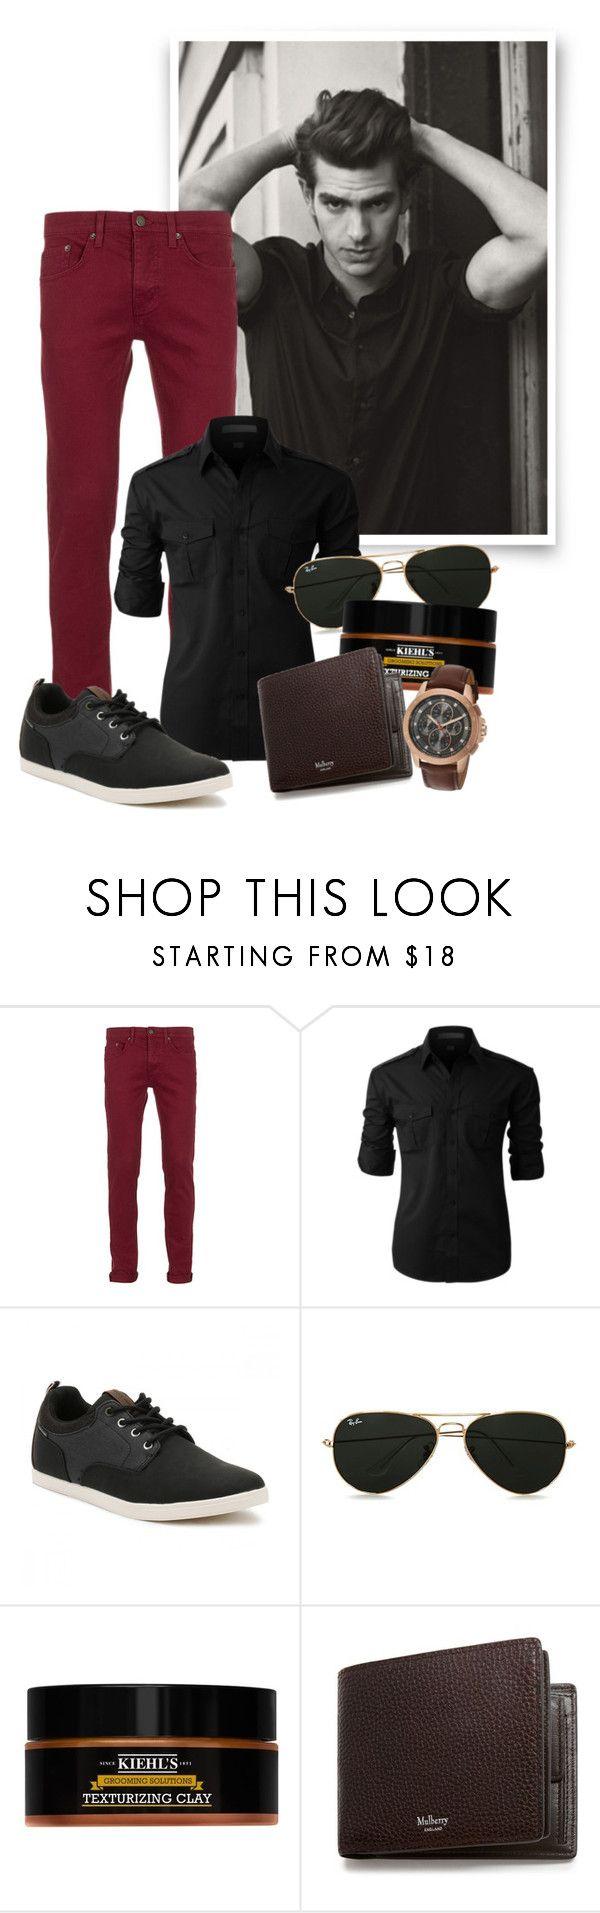 """Andrew Garfield"" by fashion-film-fun ❤ liked on Polyvore featuring Topman, LE3NO, Jack & Jones, Kiehl's, Mulberry, Michael Kors, men's fashion and menswear"